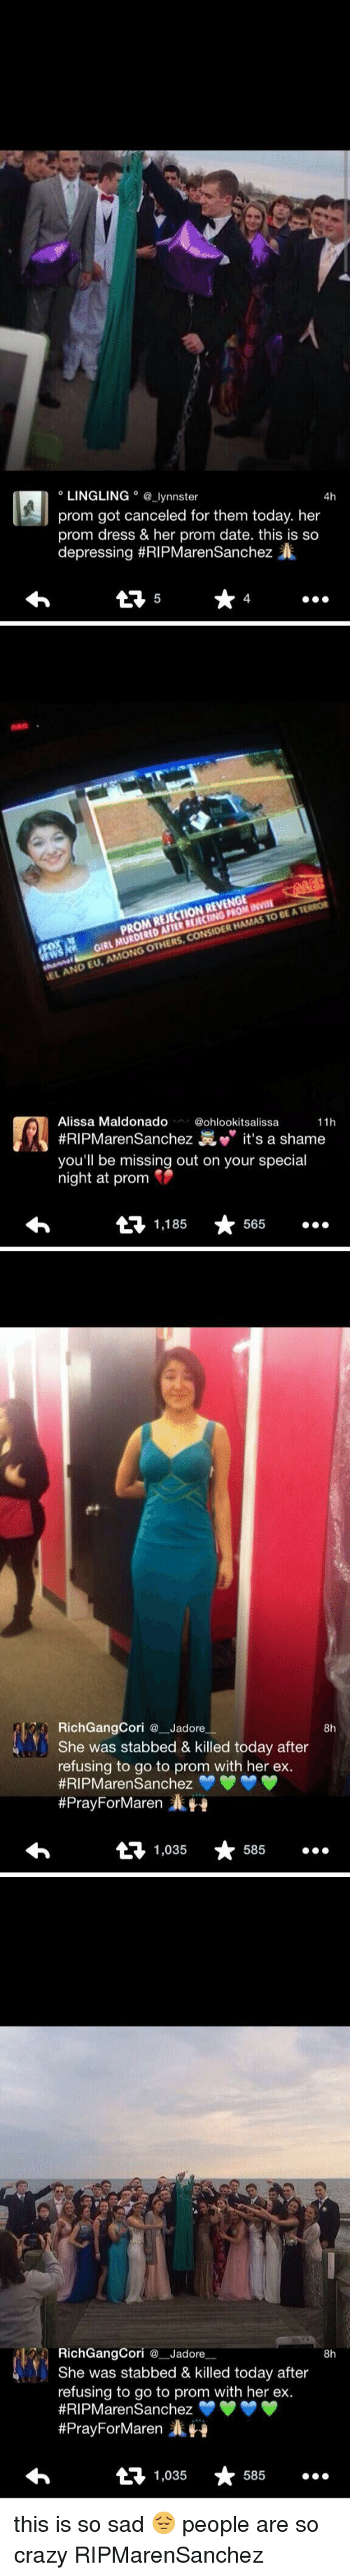 Rich Gang: LINGLING  a lynnster  4h  prom got canceled for them today. her  prom dress & her prom date. this is so  depressing #RIPMarenSanchez  X   REVENGE  BEATERROR  PROM REJECTION HAMAS TO CONSIDER GIRL OTHERS, KEL AND EU, AMONG Alissa Maldonado  @ohlookitsalissa  11h  ens  it's a shame  you'll be missing out on your special  night at prom  1,185  565   Rich Gang Cori Jadore  8h  She was stabbed & killed today after  refusing to go to prom with her ex.  #RIP Maren Sanchez  #Pray ForMaren  ERH  1,035  585   Rich GangCor  Jadore  8h  She was stabbed & killed today after  refusing to go to prom with her ex.  #RIPMaren Sanchez  #Pray ForMaren  1,035  585 this is so sad 😔 people are so crazy RIPMarenSanchez